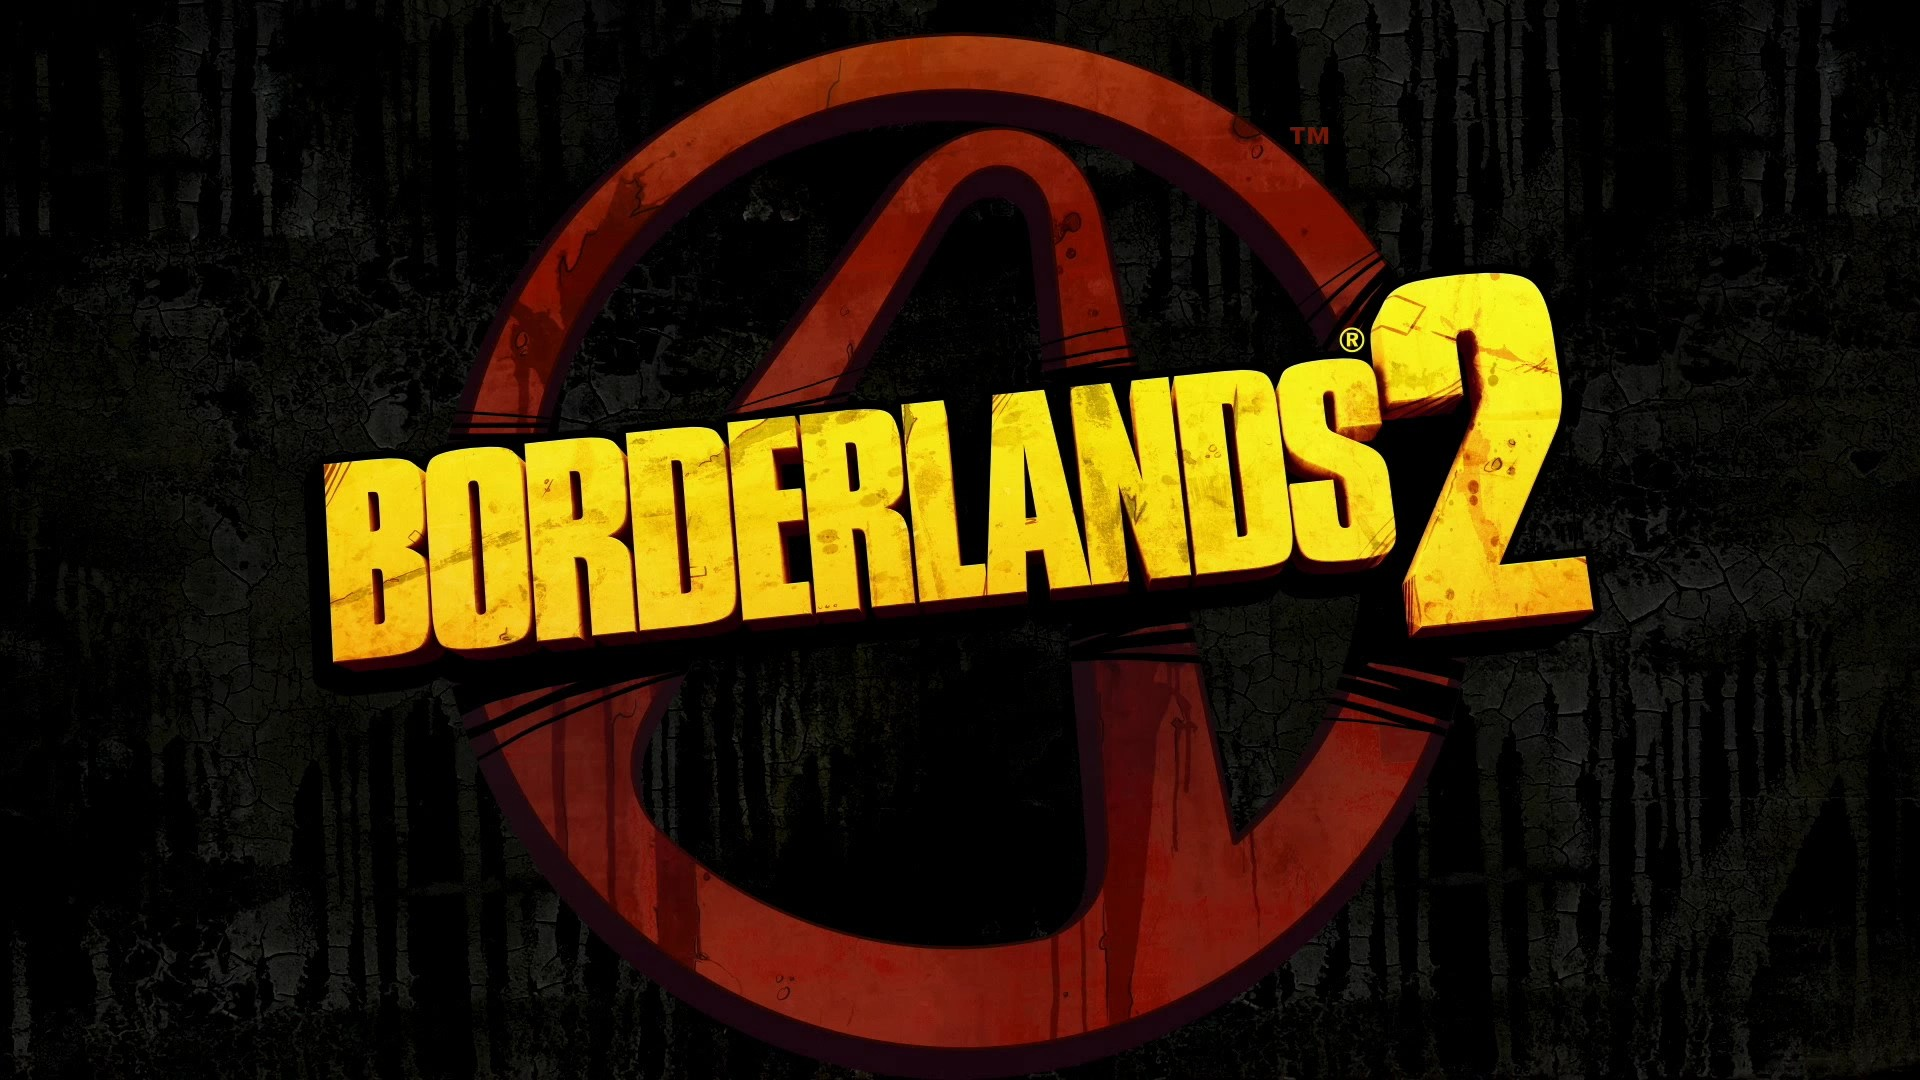 Borderlands 2 Ps Vita Gameplay Video Aufgetaucht Nat Games